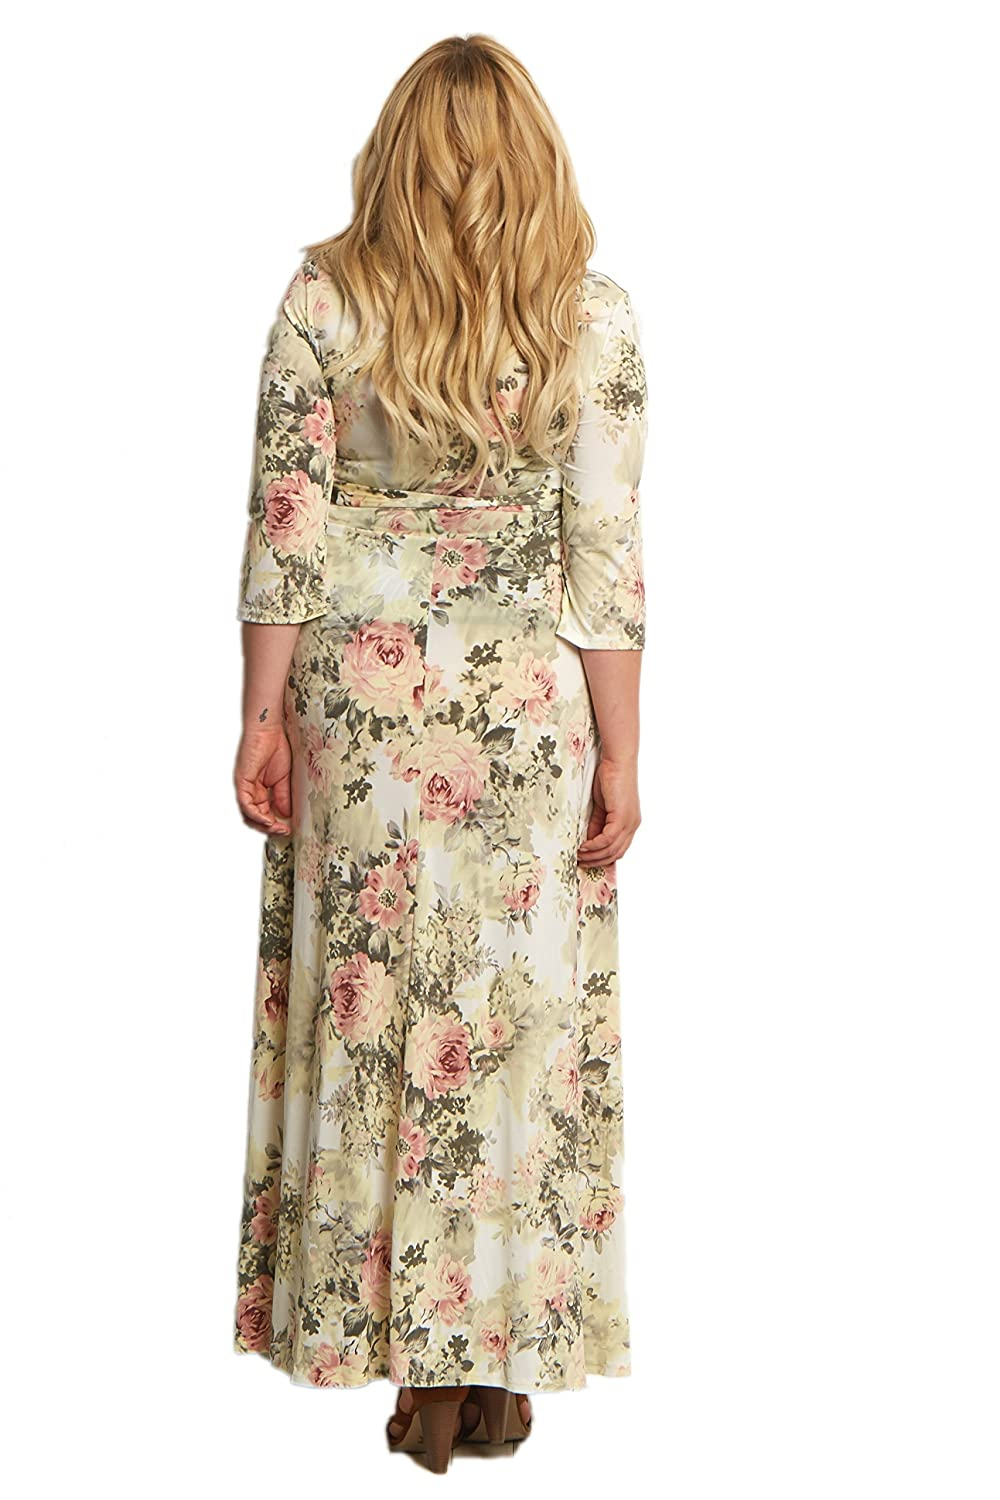 78d8a1557e96c PinkBlush Maternity Floral Sash Tie Maxi Dress at Amazon Women's Clothing  store: